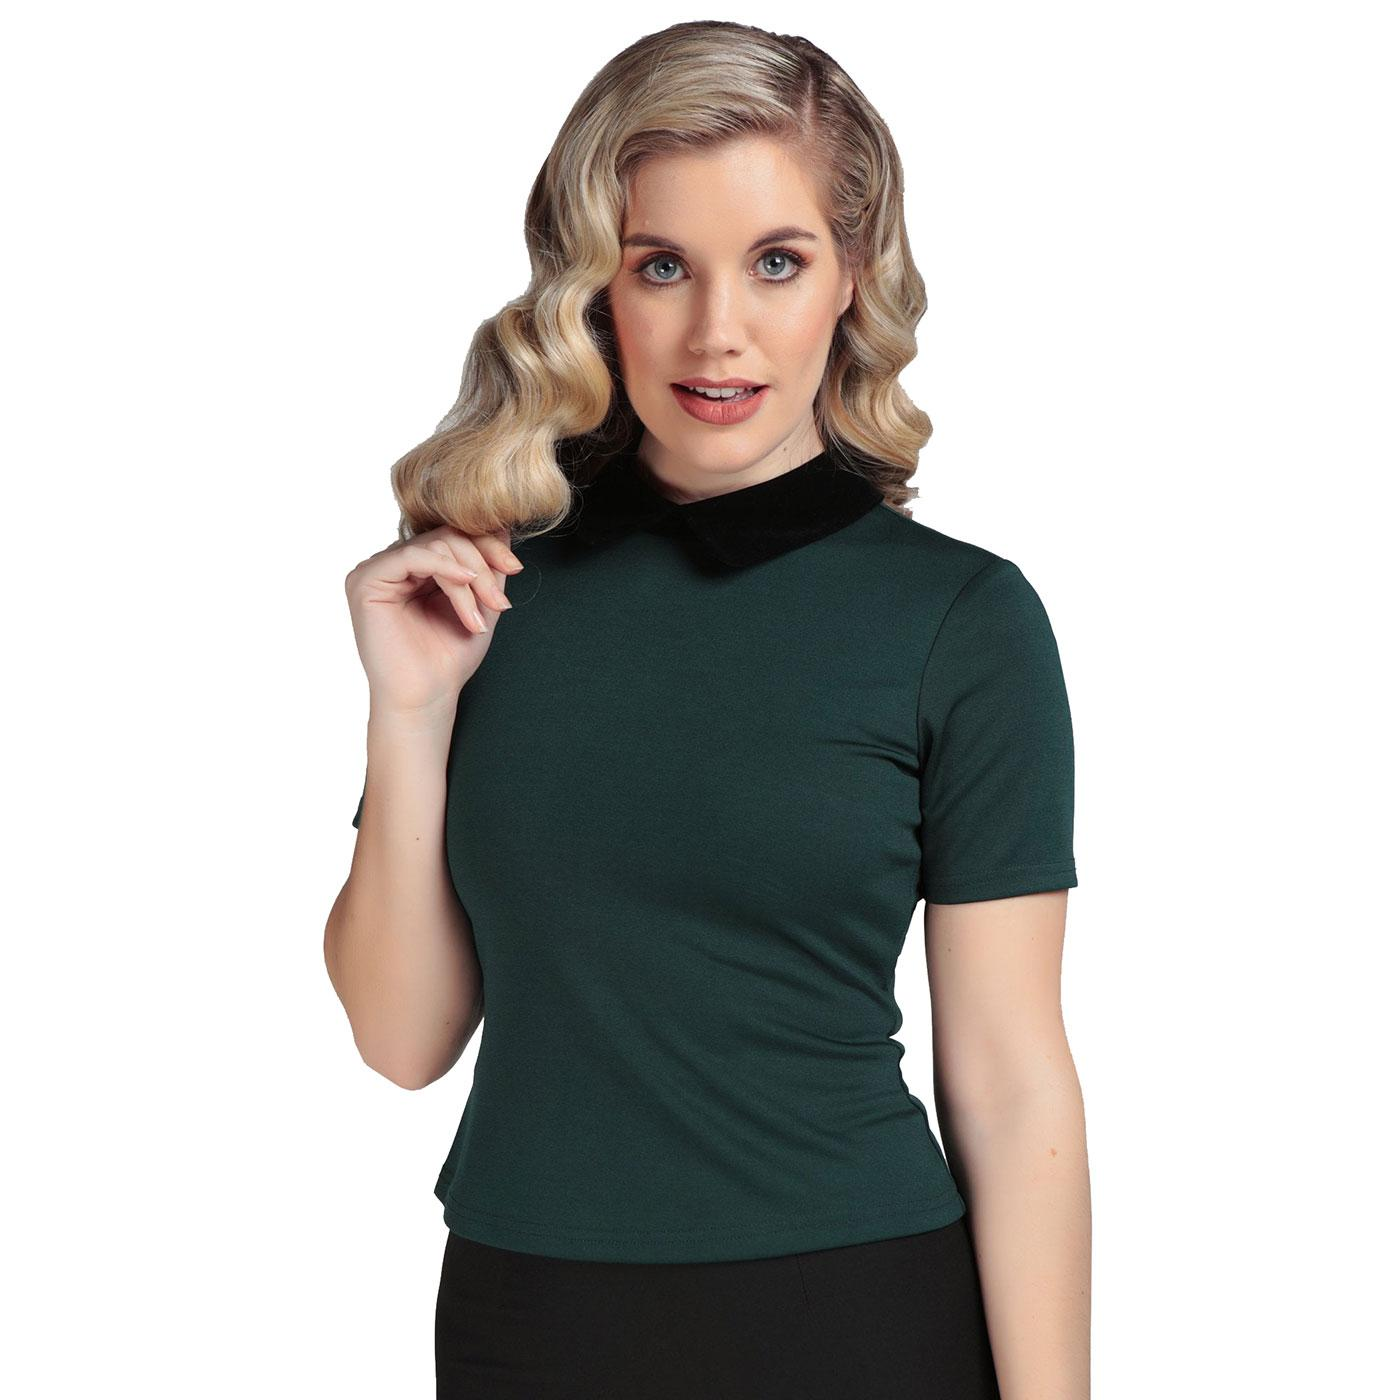 Katy COLLECTIF Peter Pan Collar Mod Top In Green